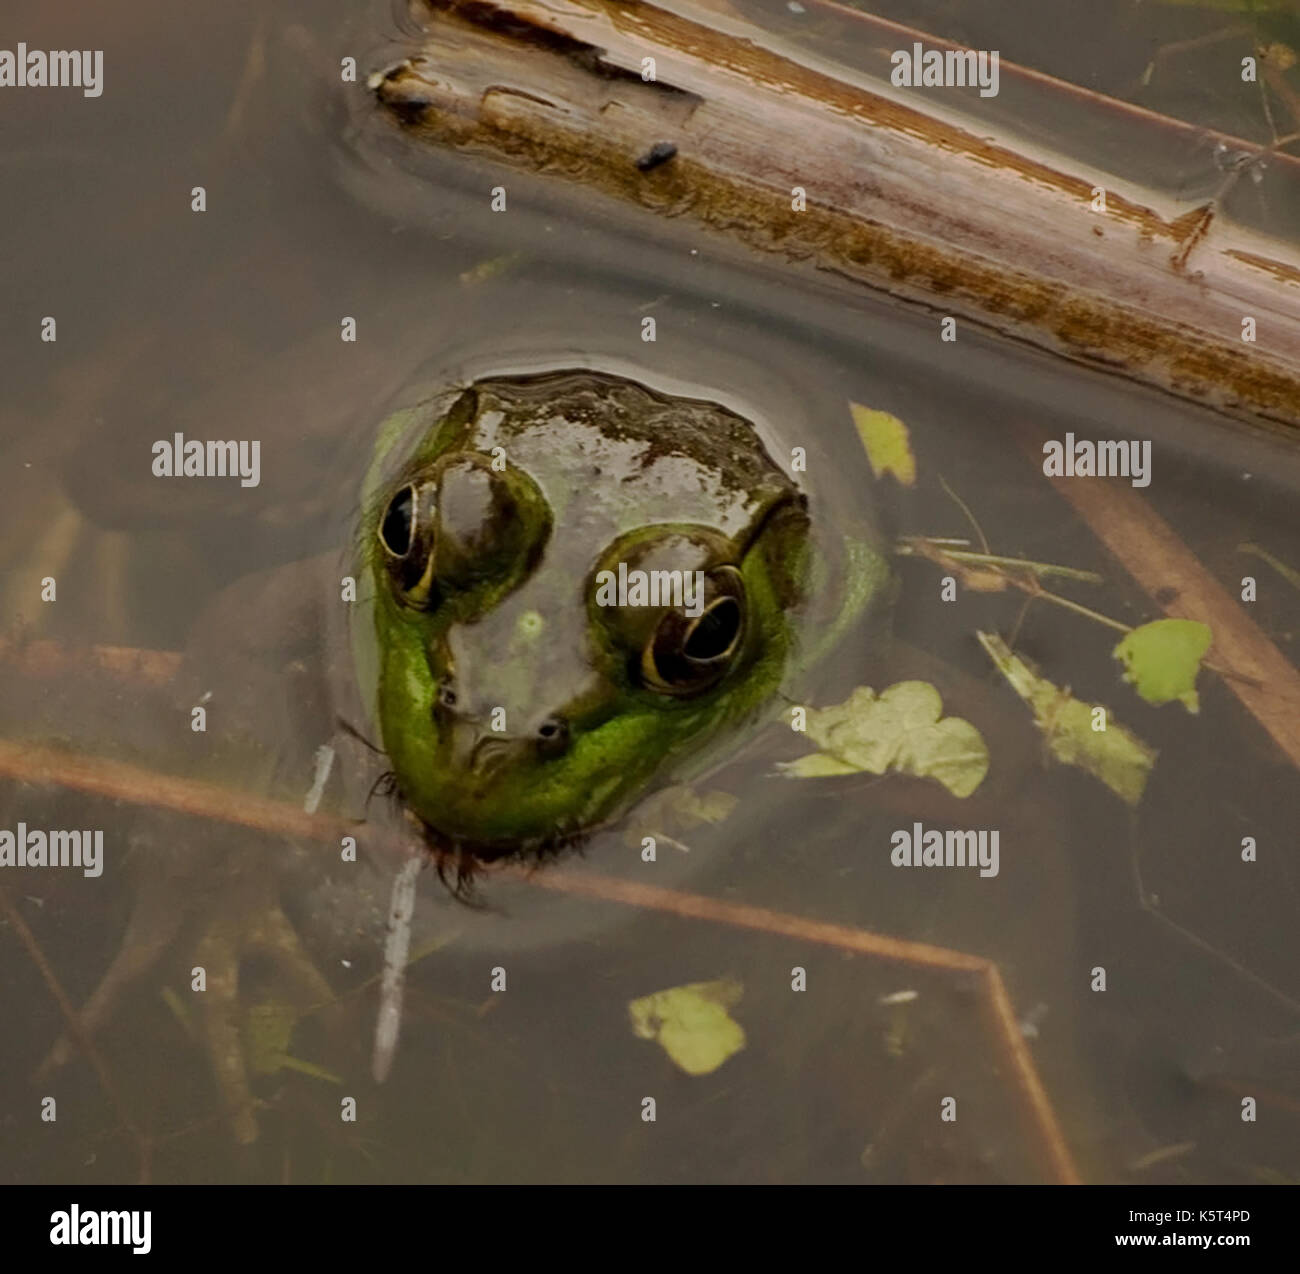 A bull frog submerged in a pond with it's head above the water - Stock Image